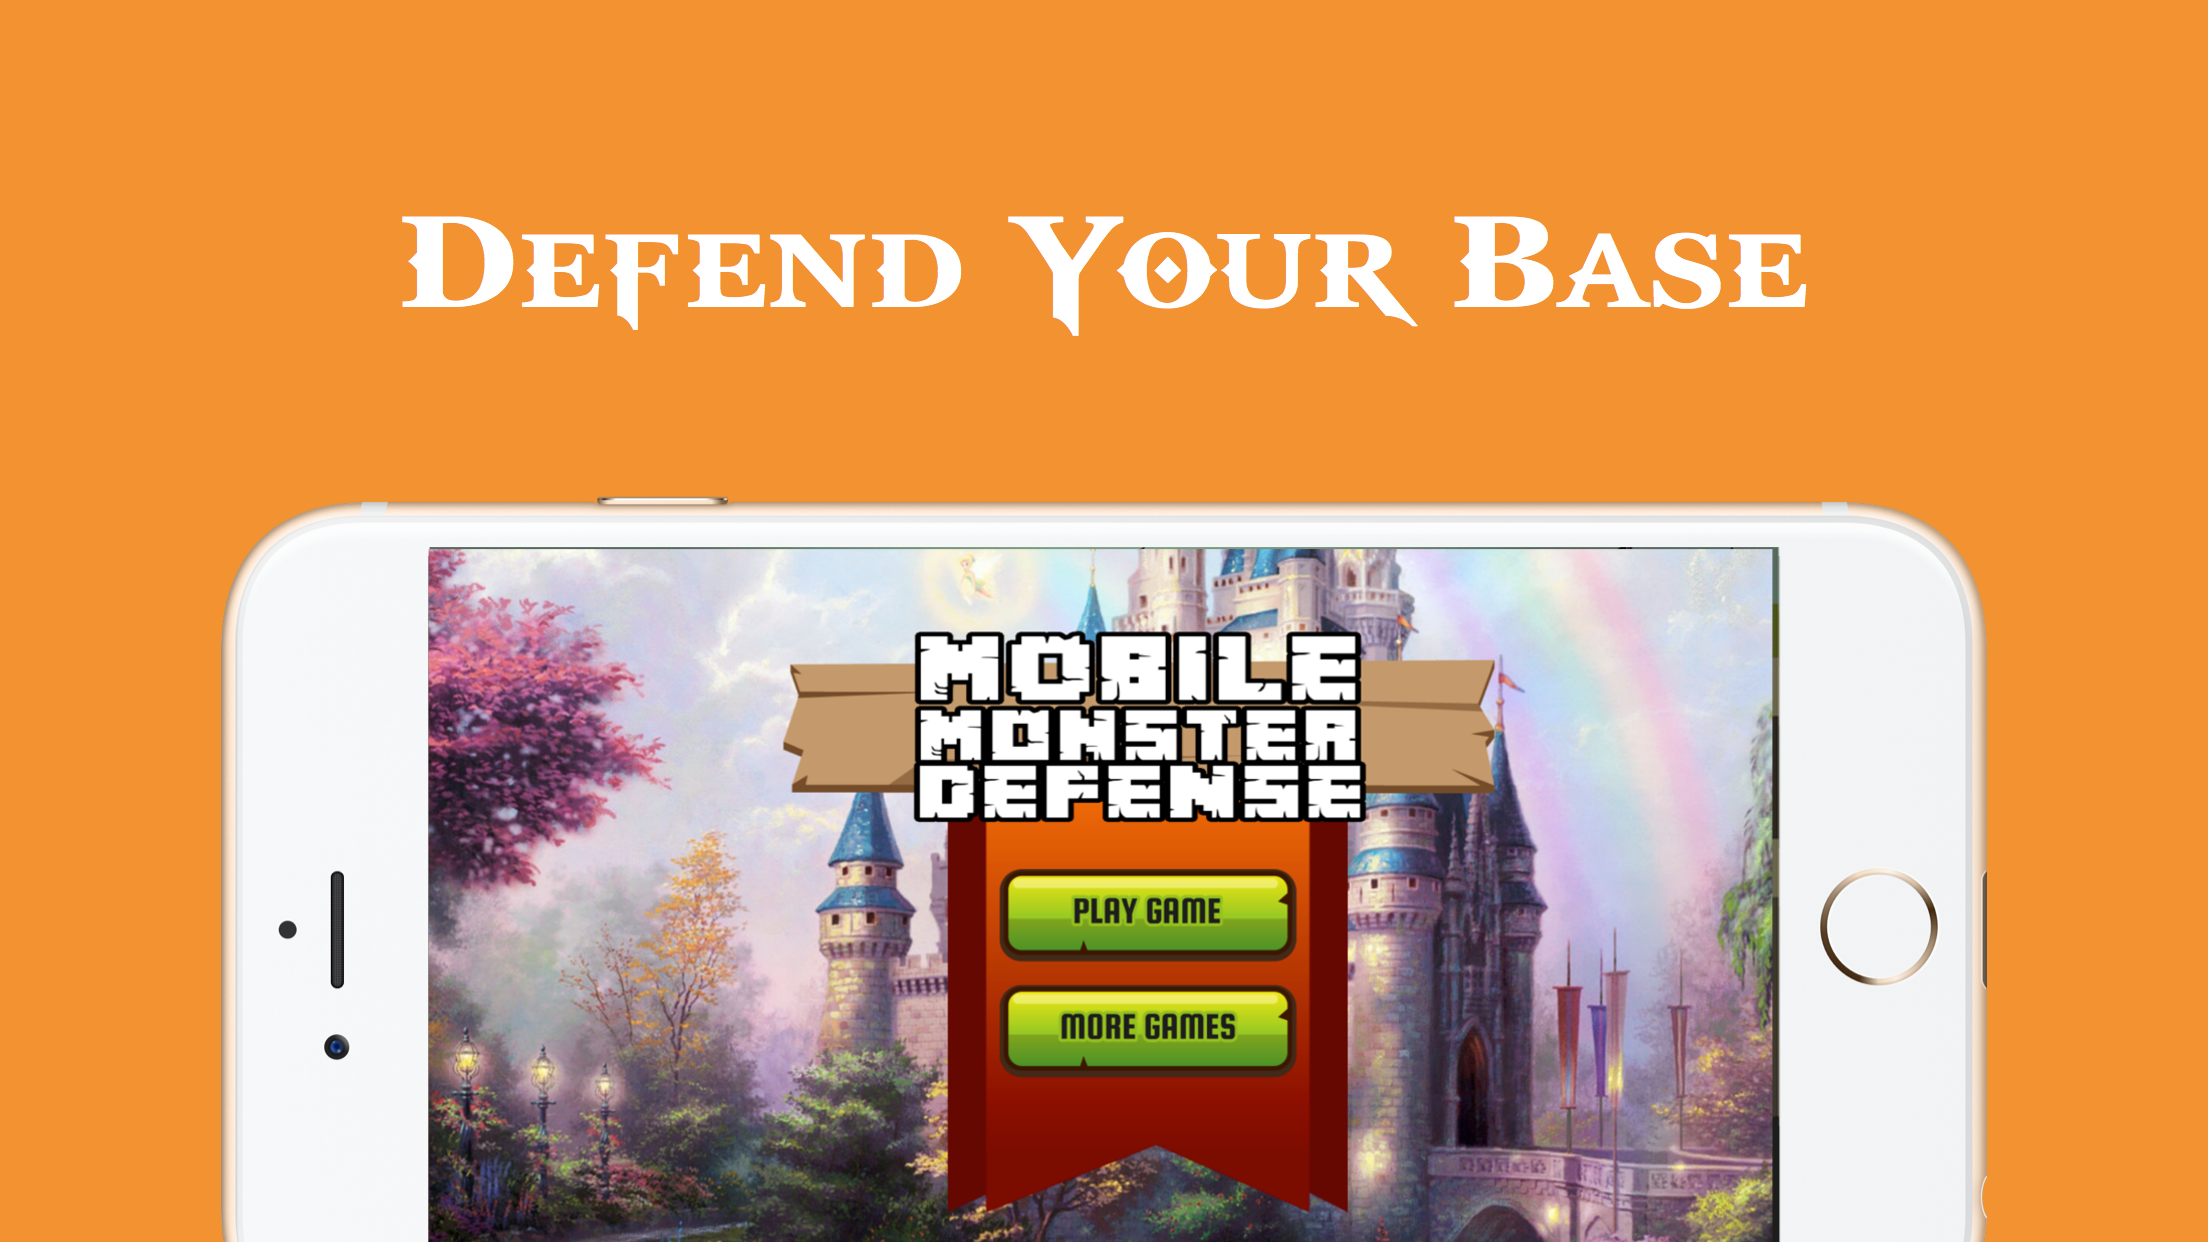 Mobile Monsters Defense